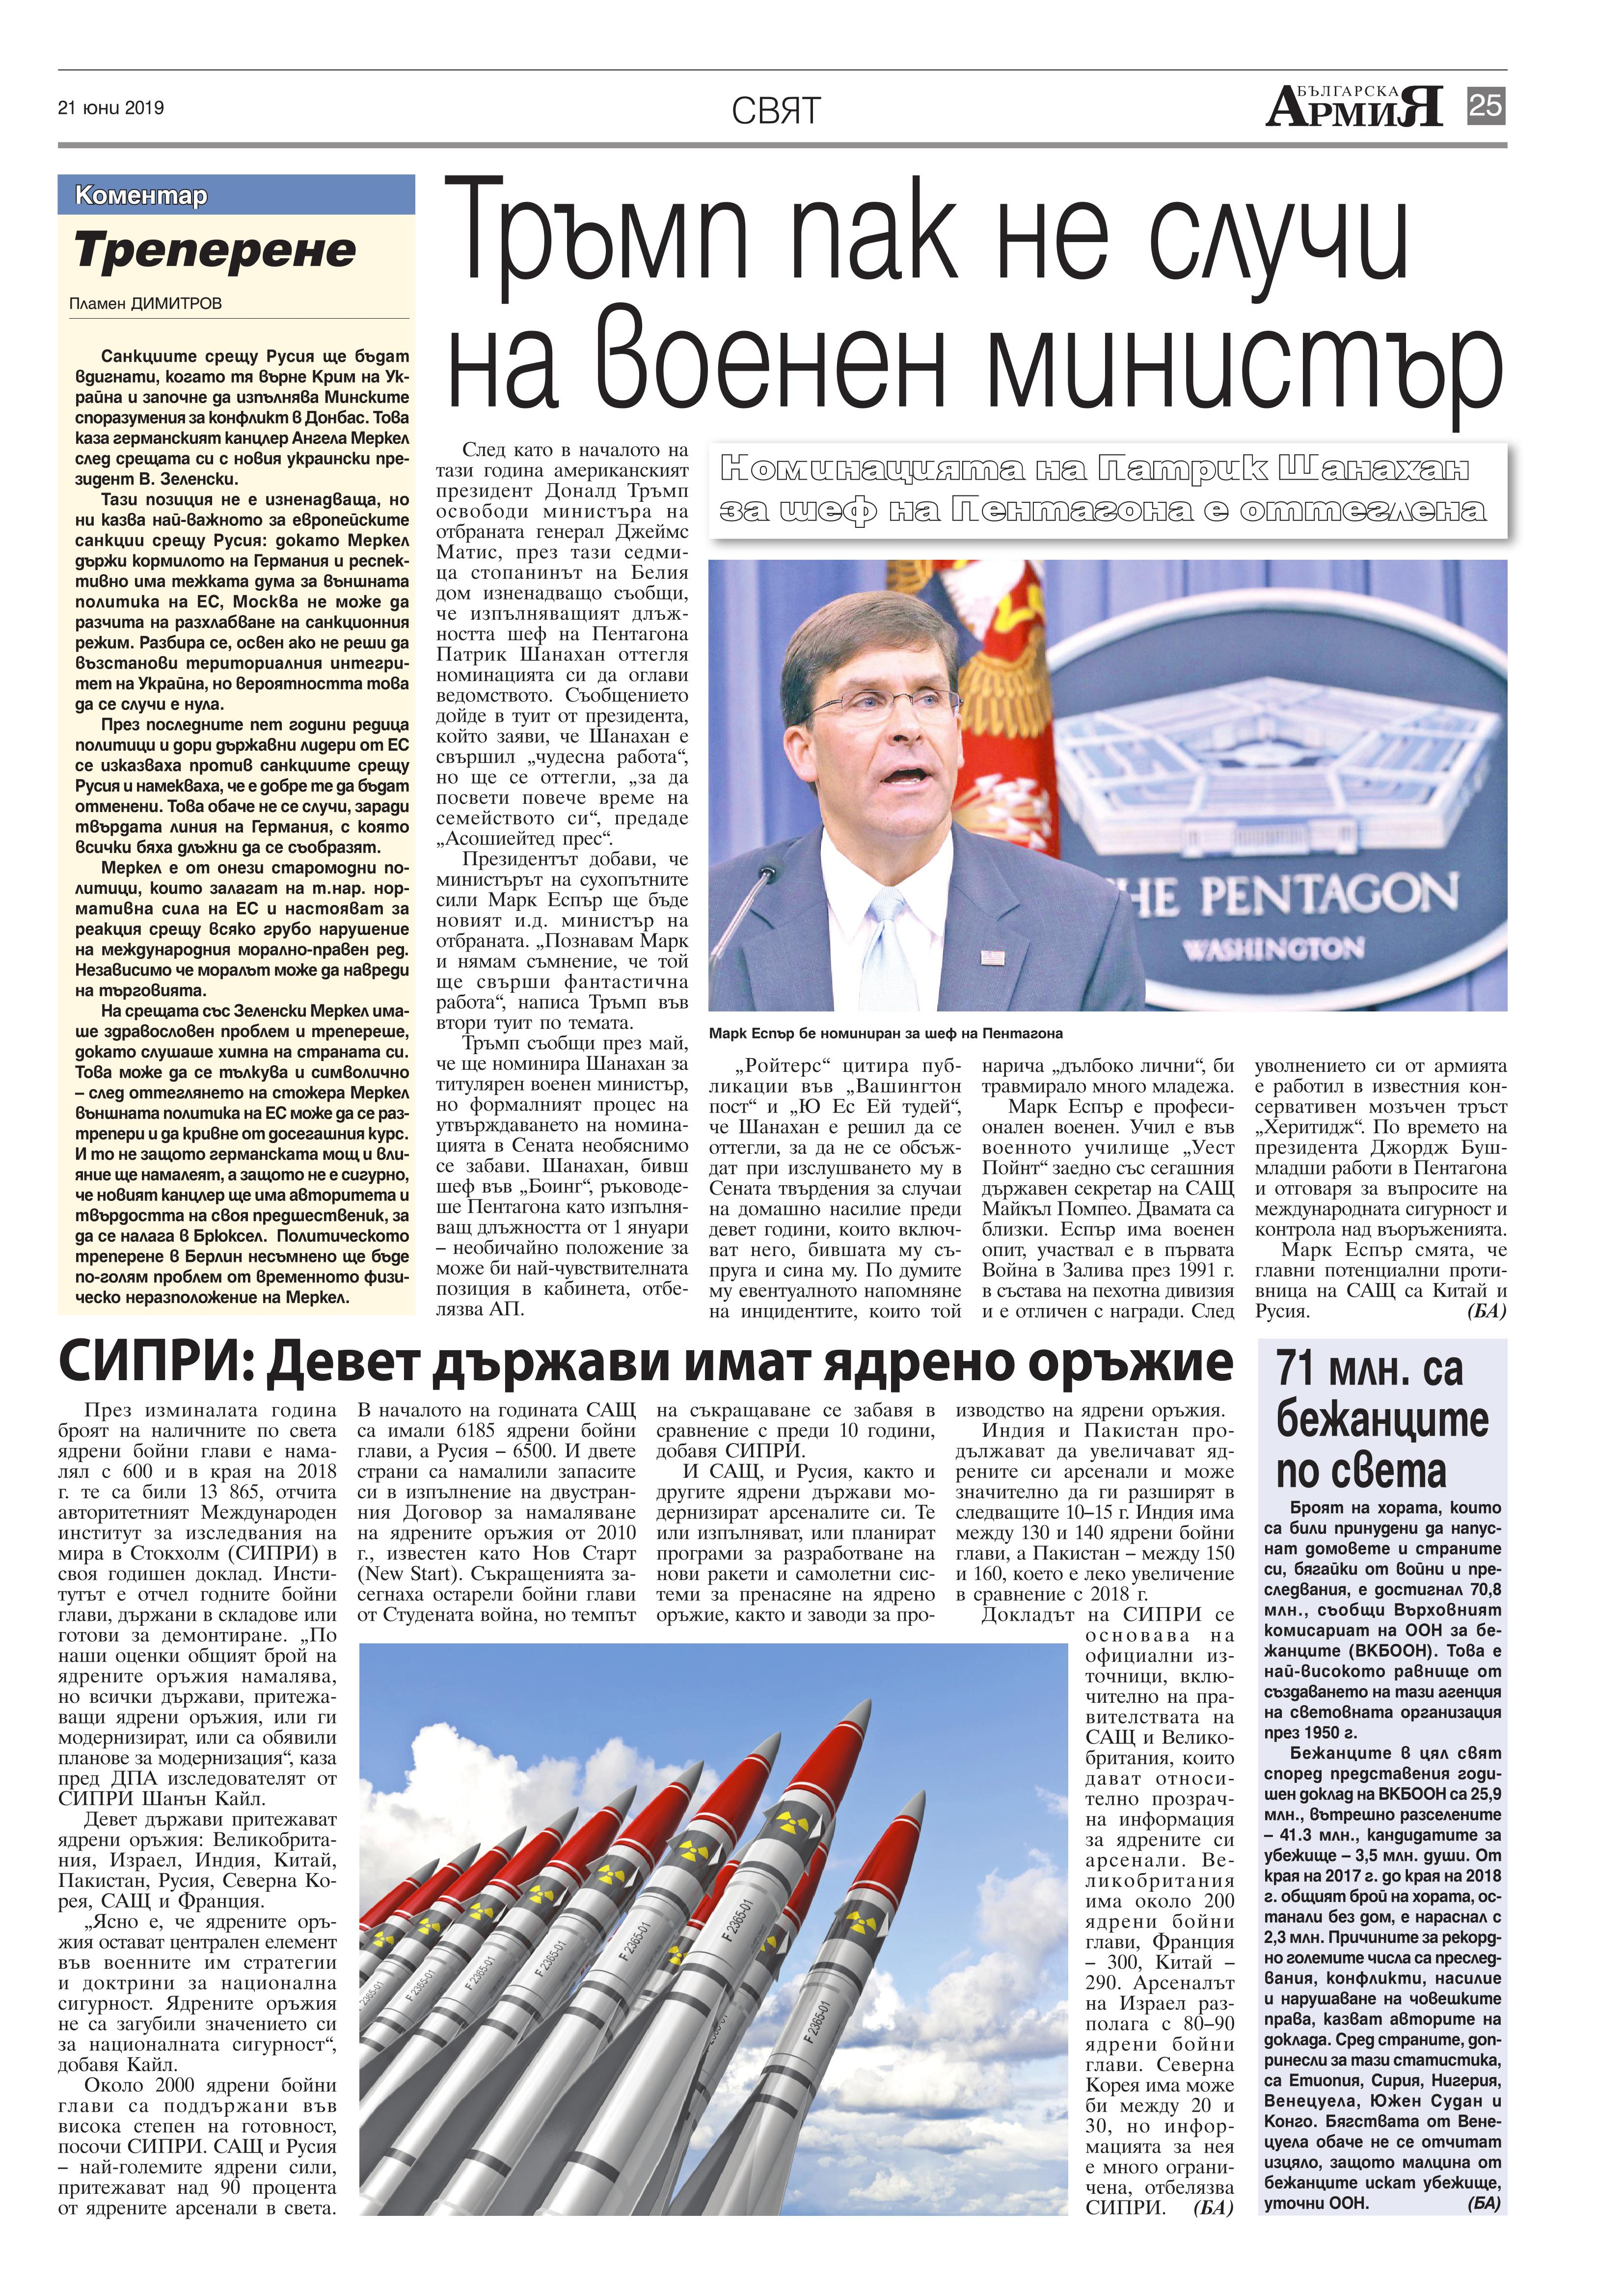 https://www.armymedia.bg/wp-content/uploads/2015/06/25.page1_-85.jpg